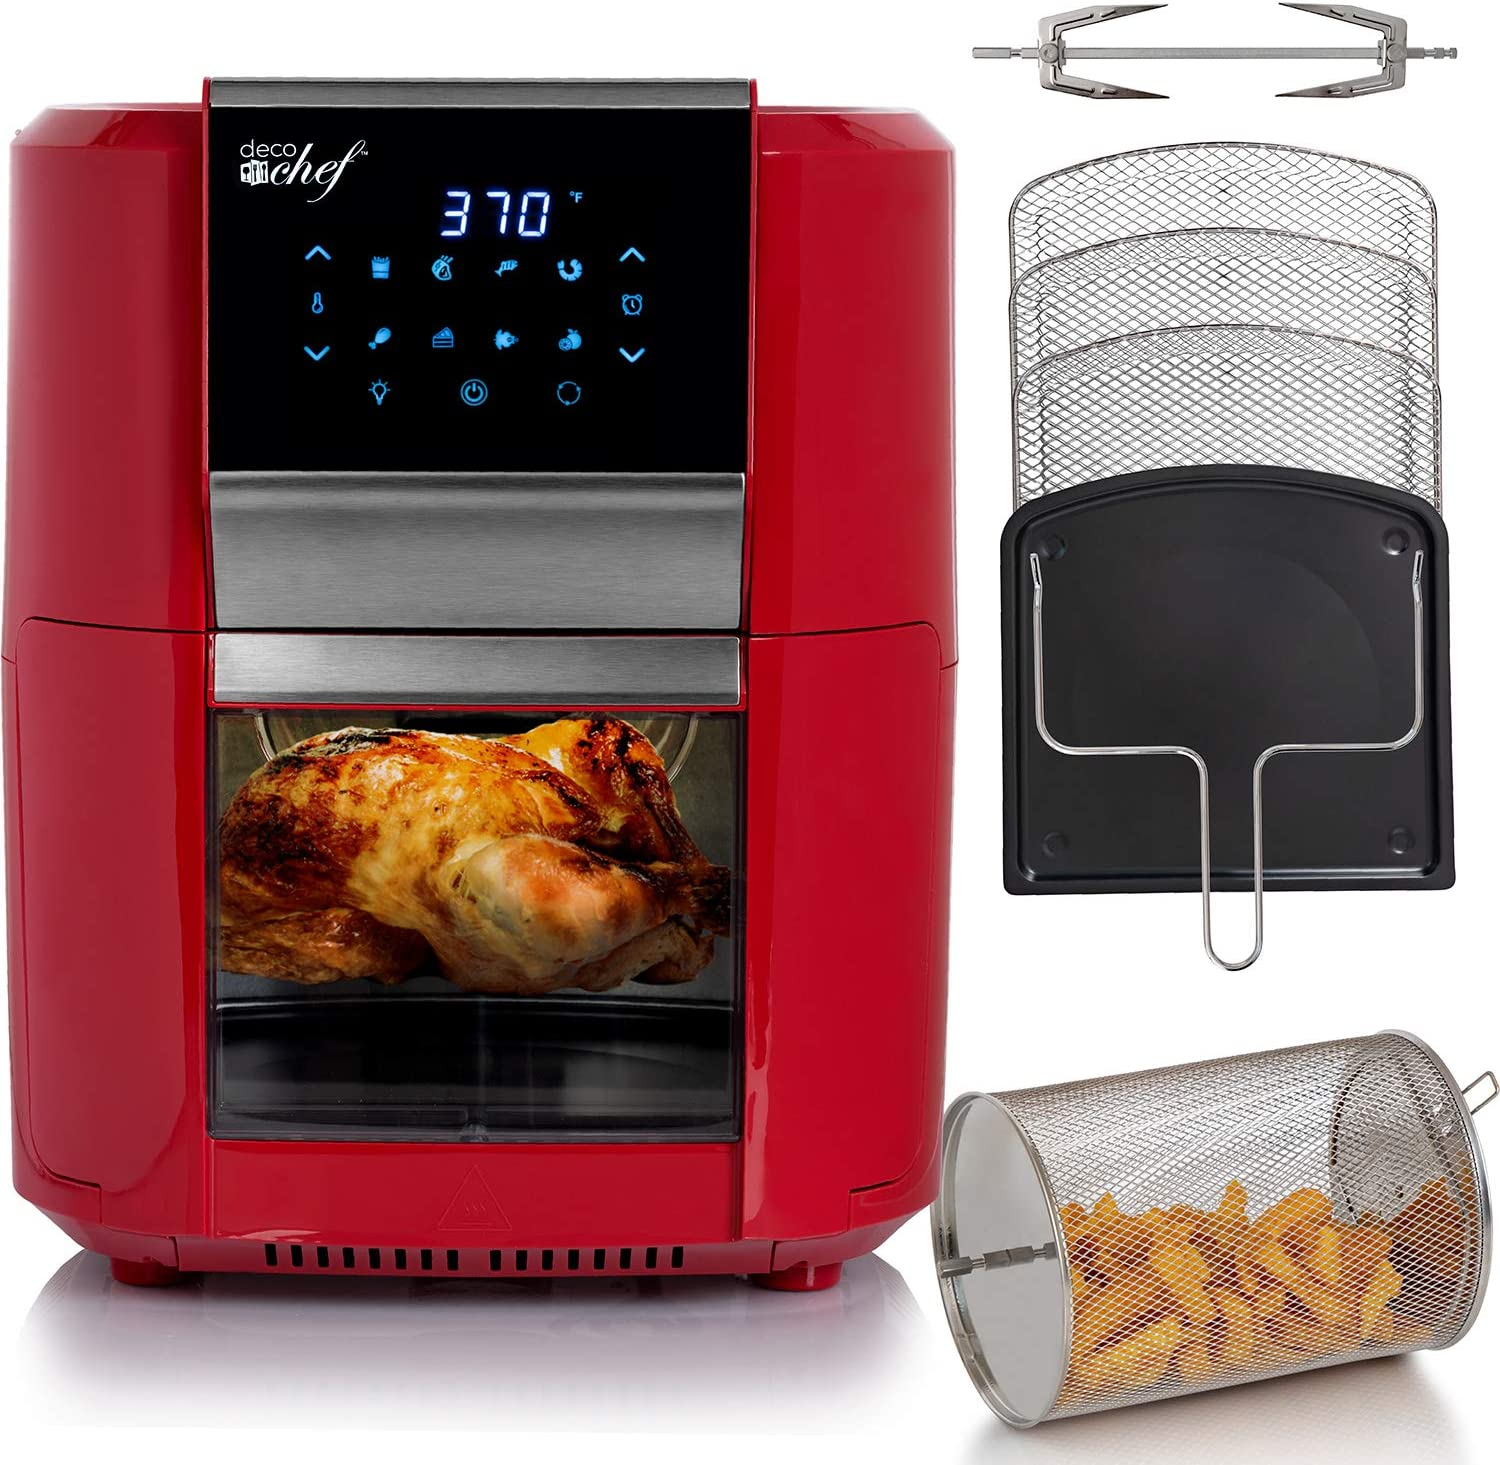 Deco Chef 12.7 QT Digital Air Fryer Oven with 8 Preset Cooking Modes, 1700W Power, Cool-Touch Housing, Includes 3 Roasting Racks, Oil Drip Tray, Rotating Basket, Rotisserie Assembly, ETL Certified, Red